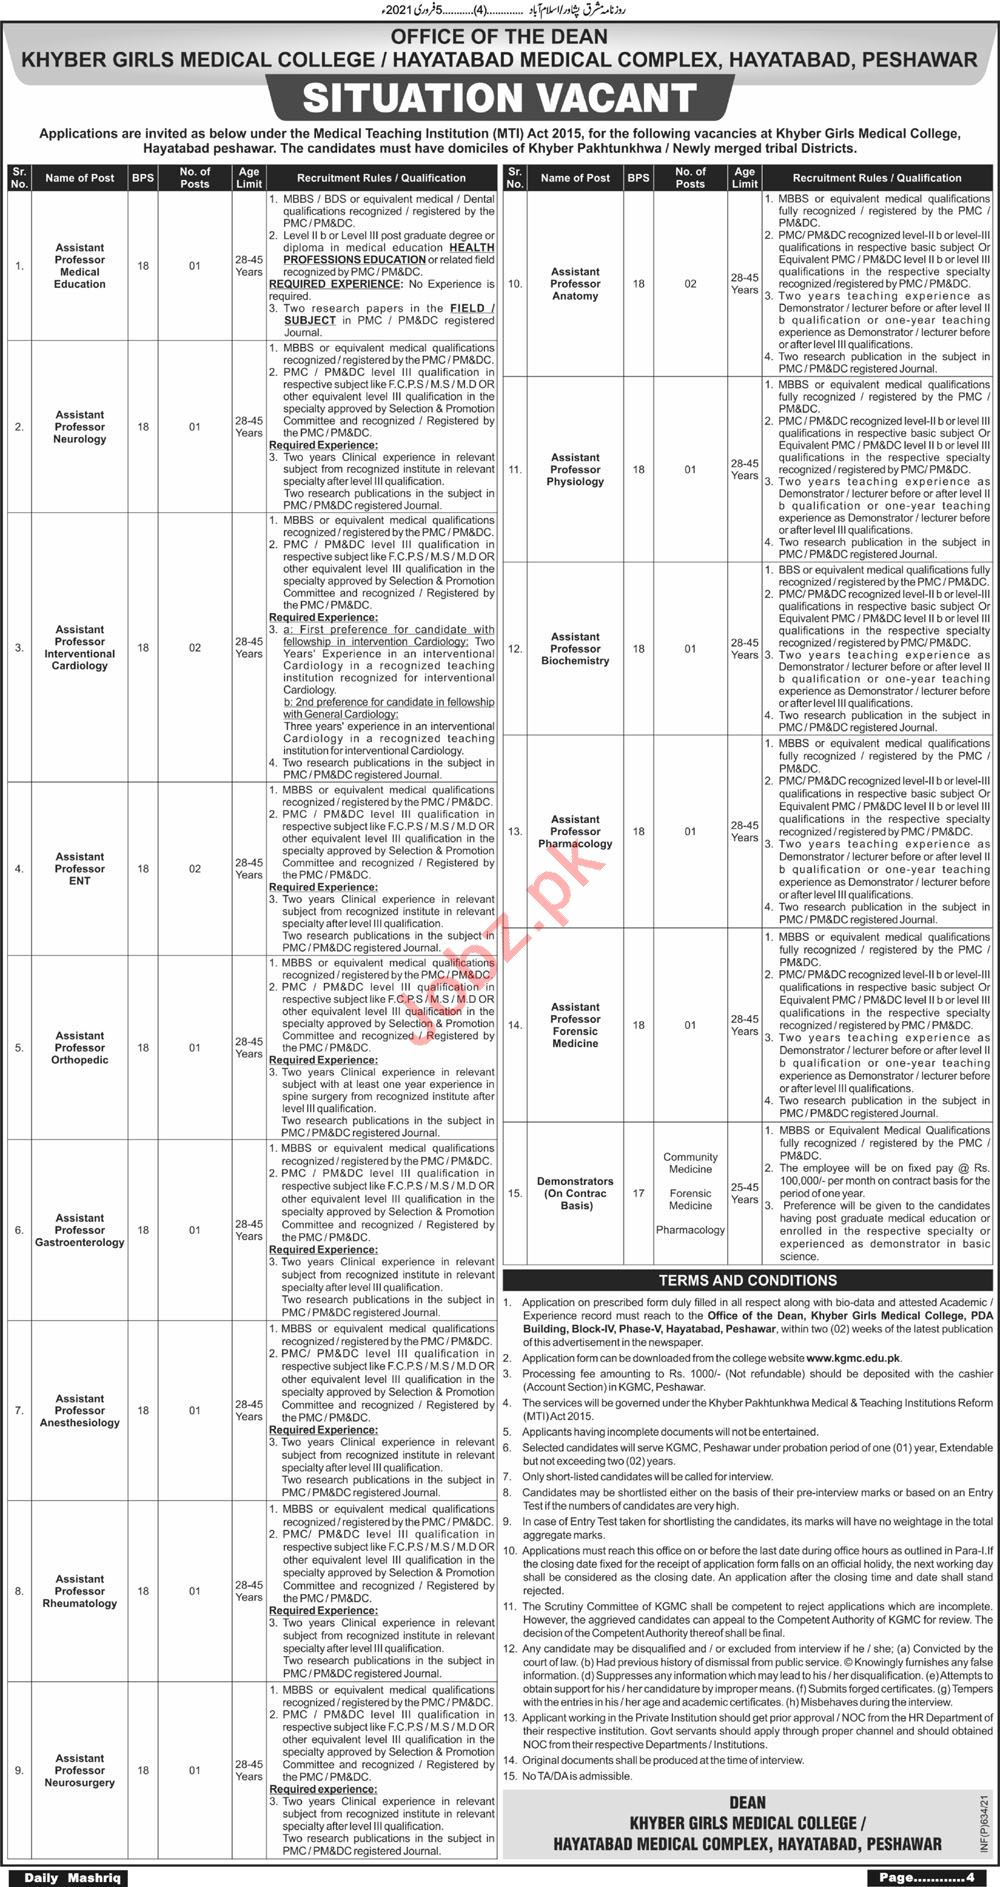 Khyber Girls Medical College Hayatabad Medical Complex Jobs